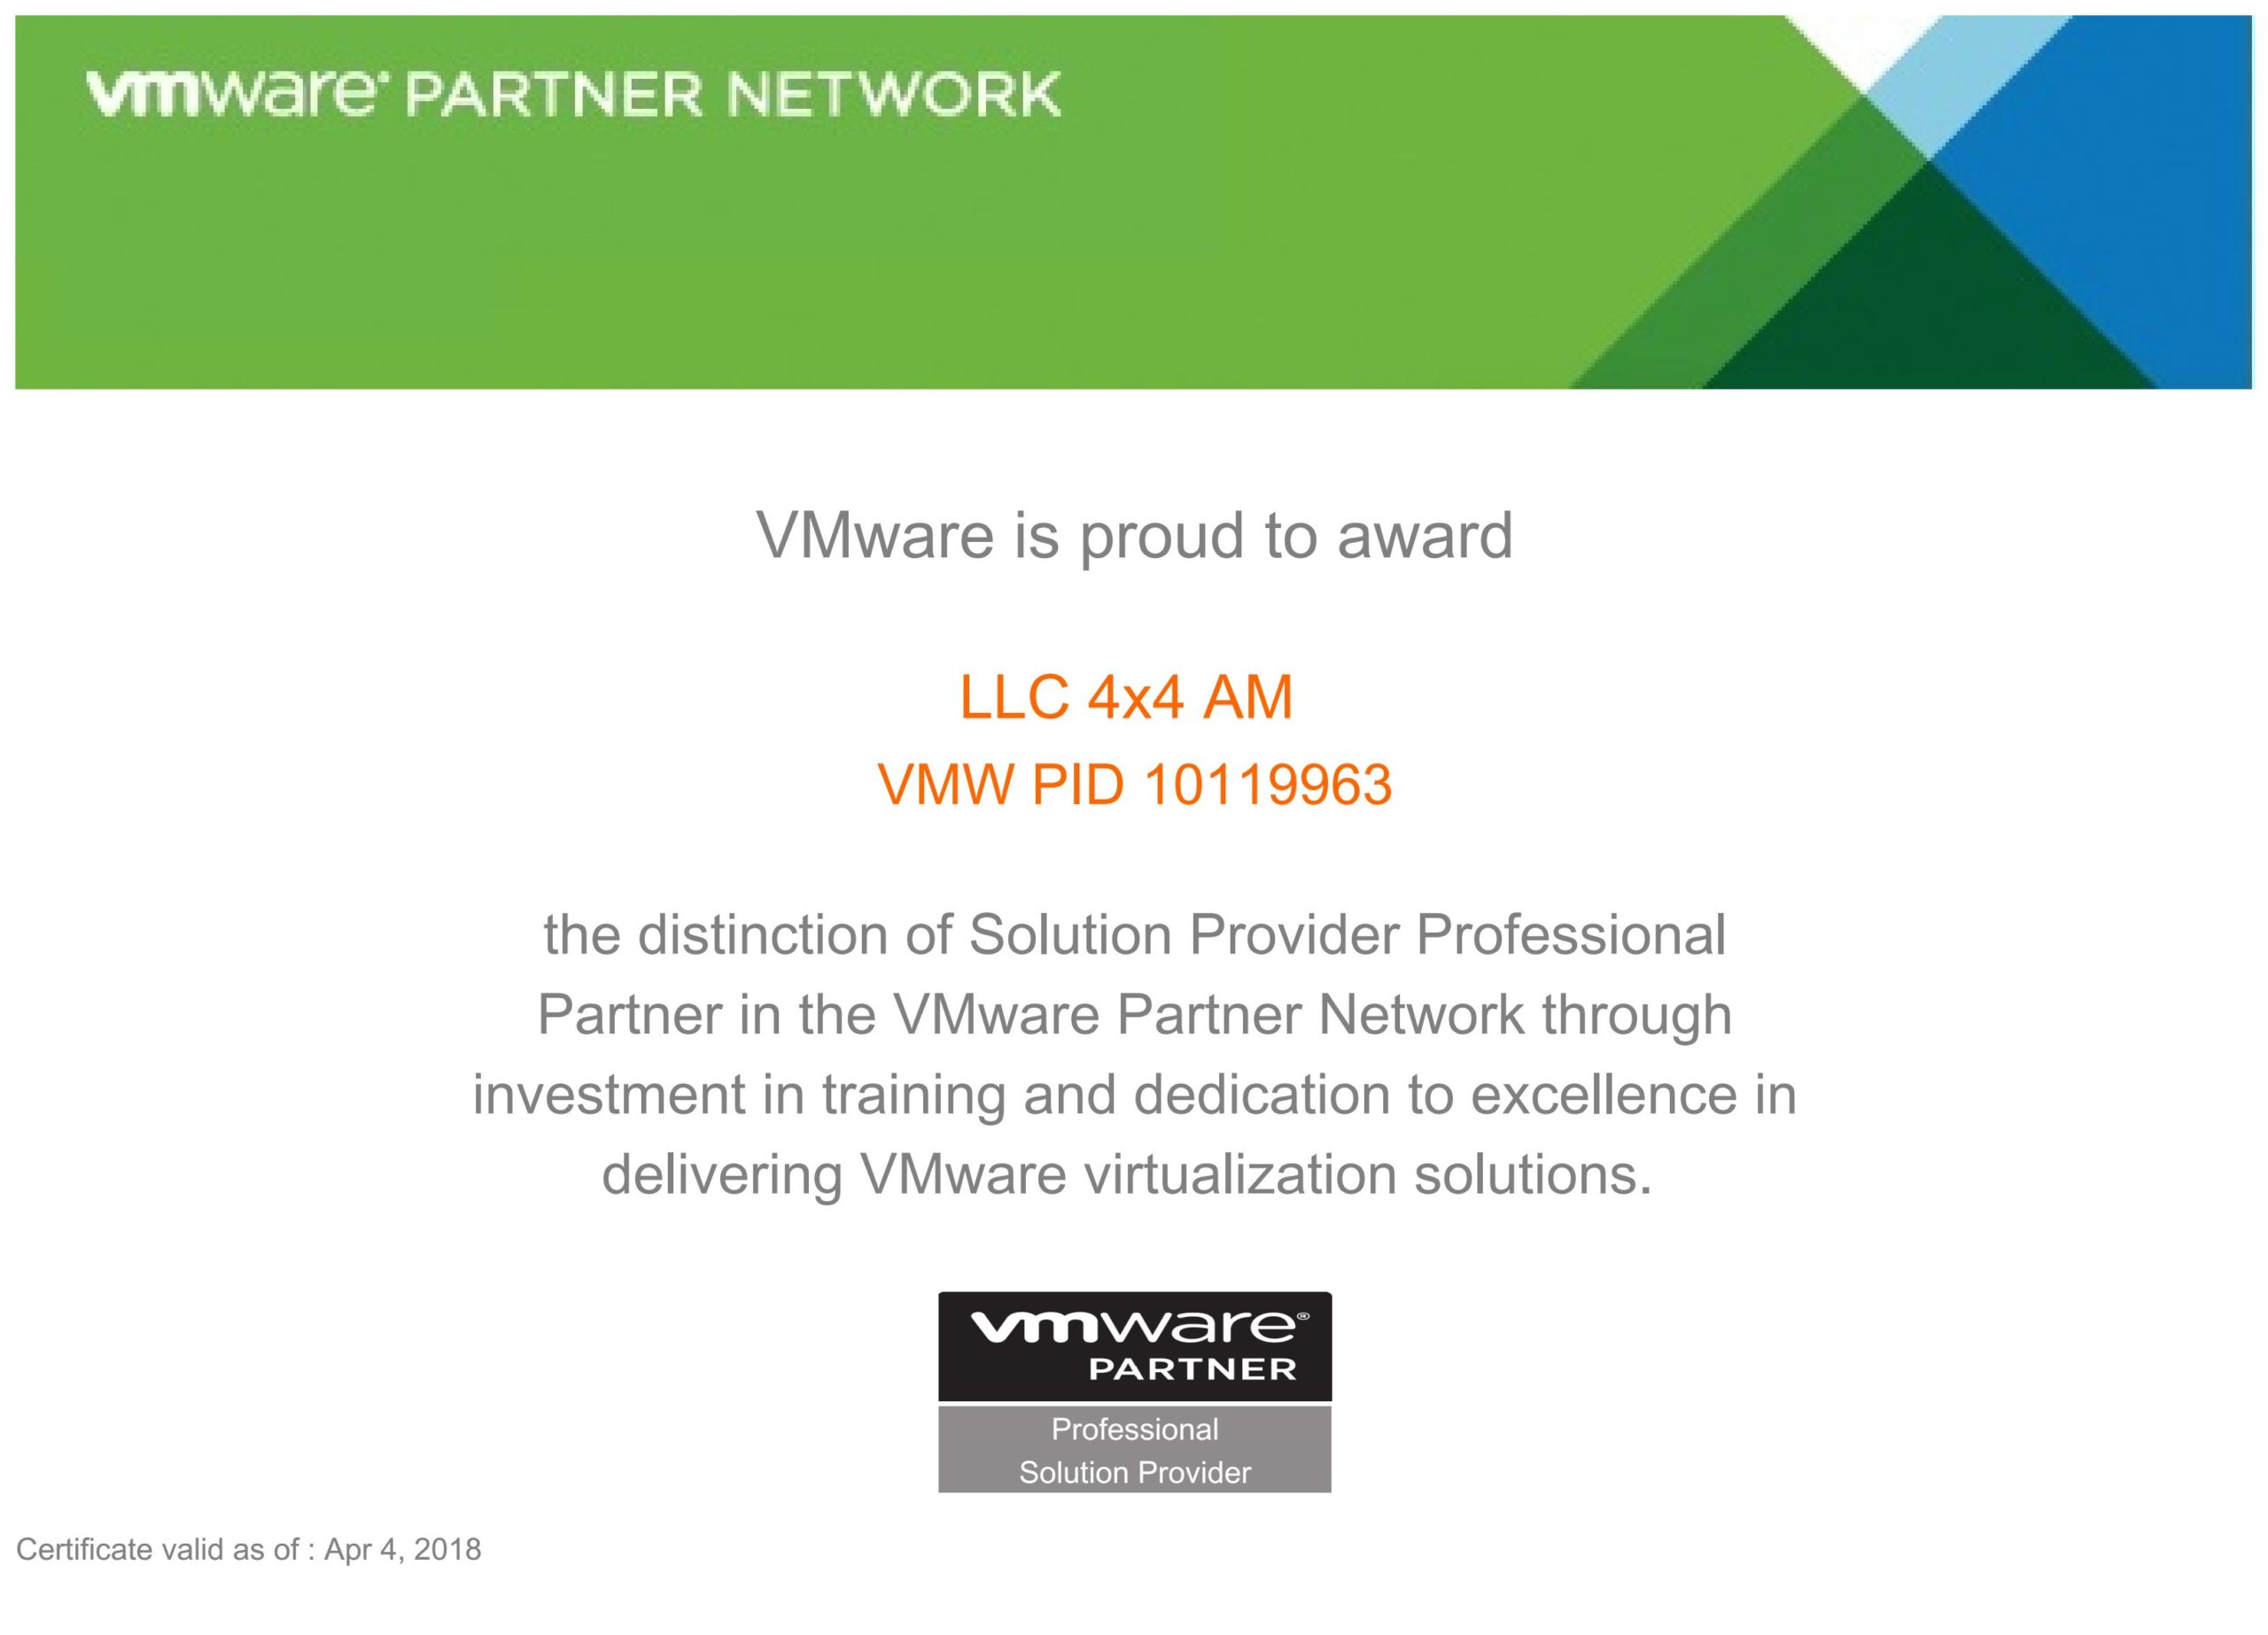 Certificate 4x4 VmWare Professional Solutions Provider 2018